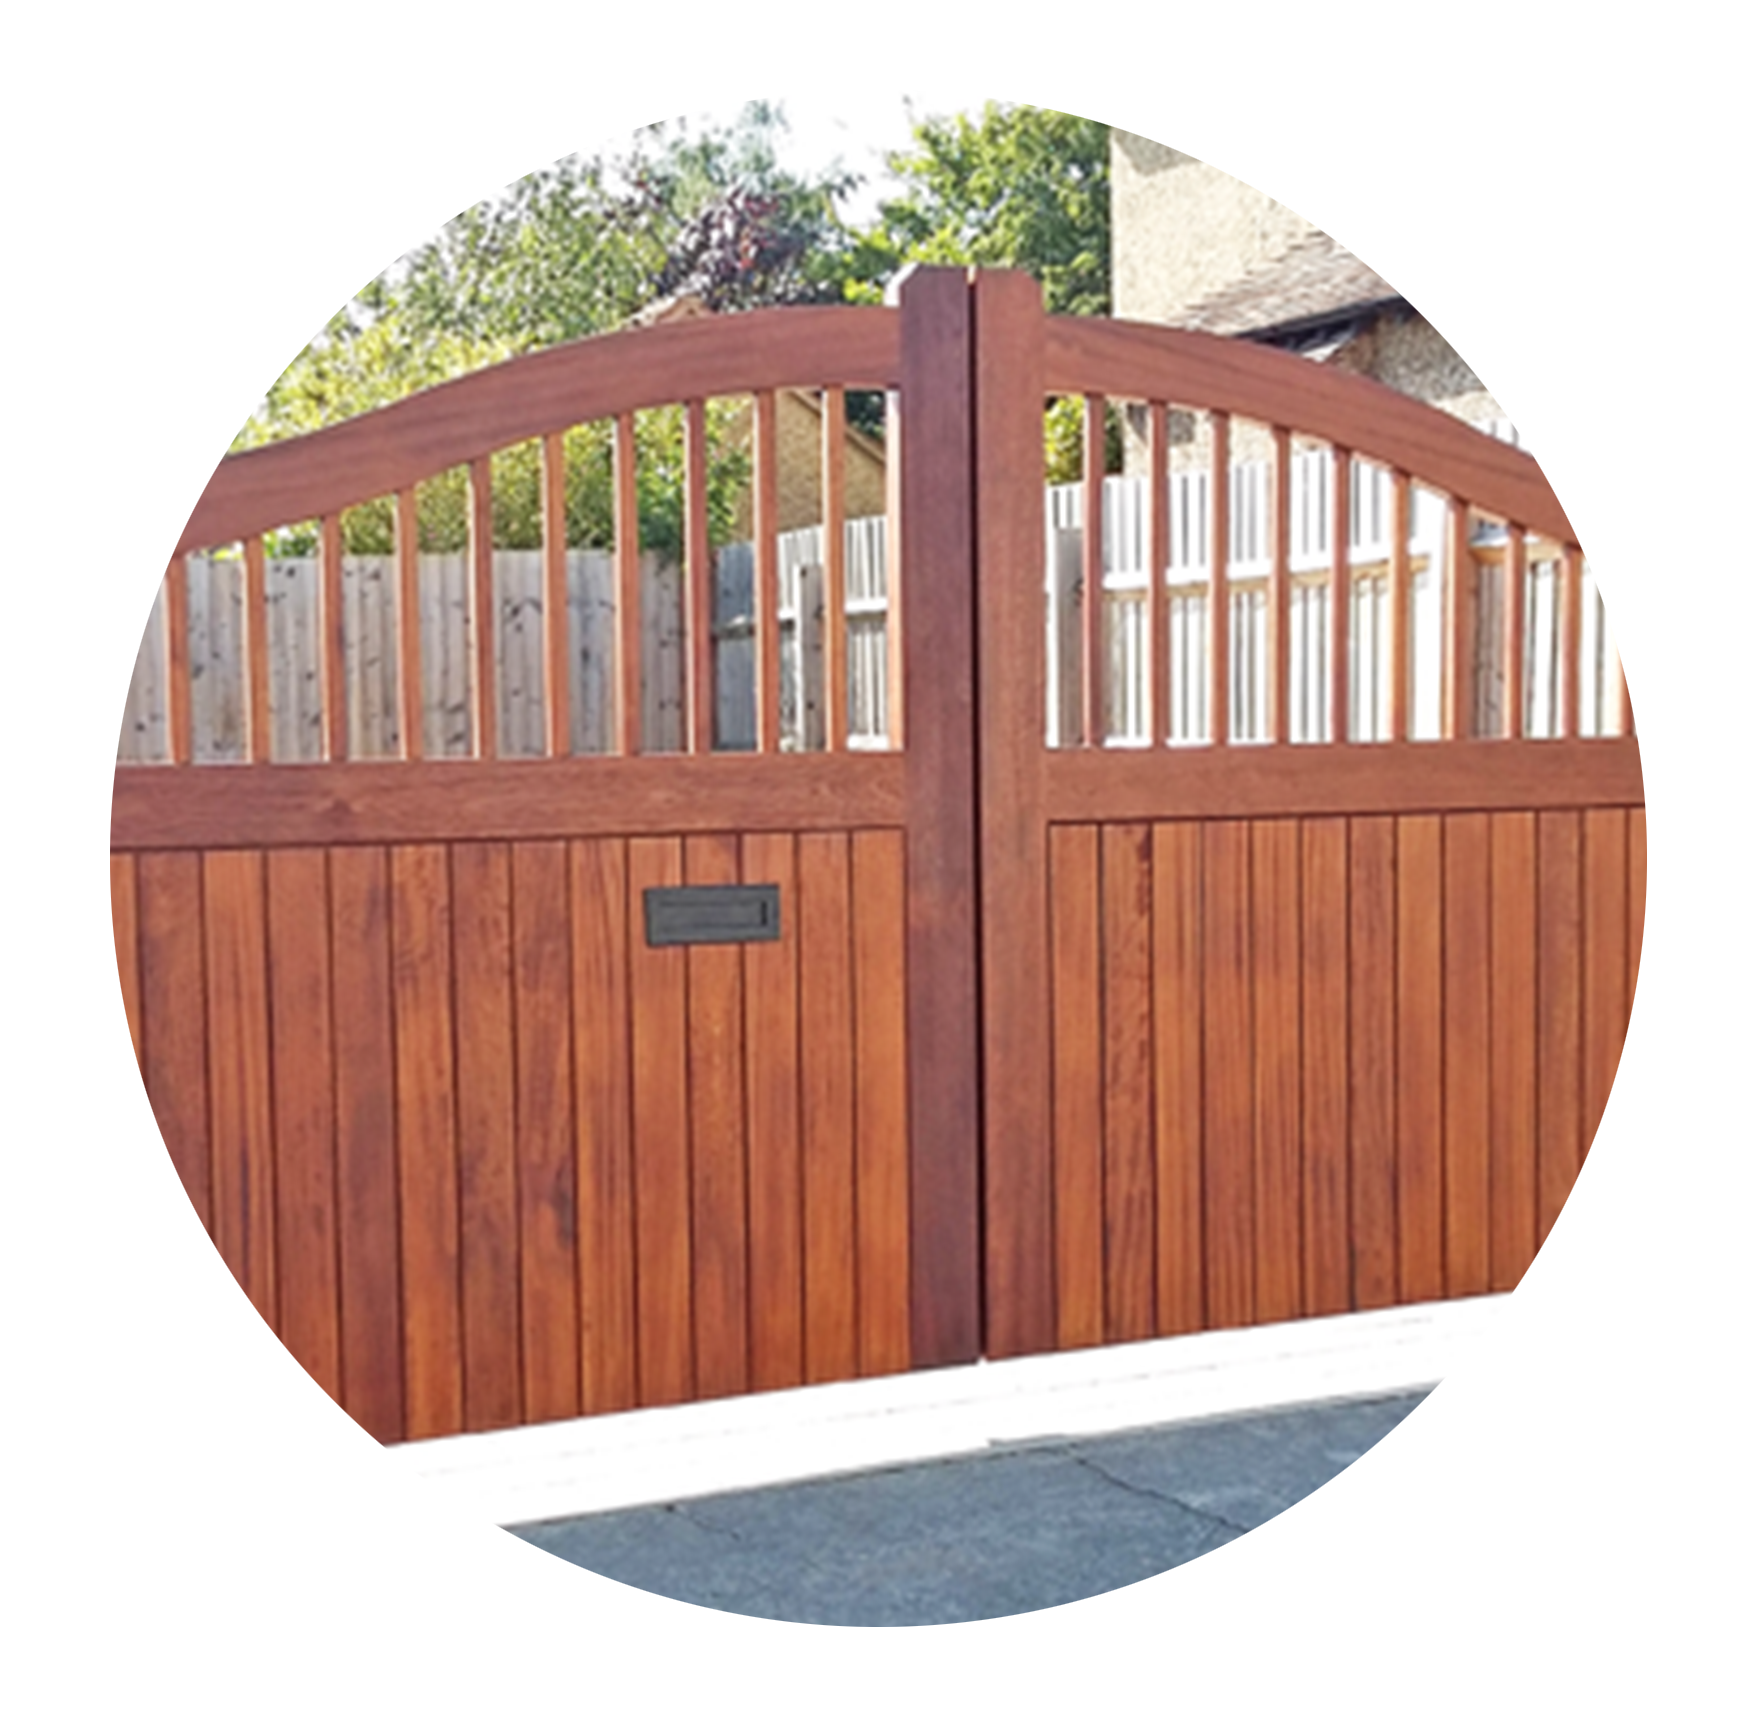 Gate Automation - Completion design and installation of gate automation systems, whether it is automation and existing gate or a complete automated gate solution, commission and test to current legislation.